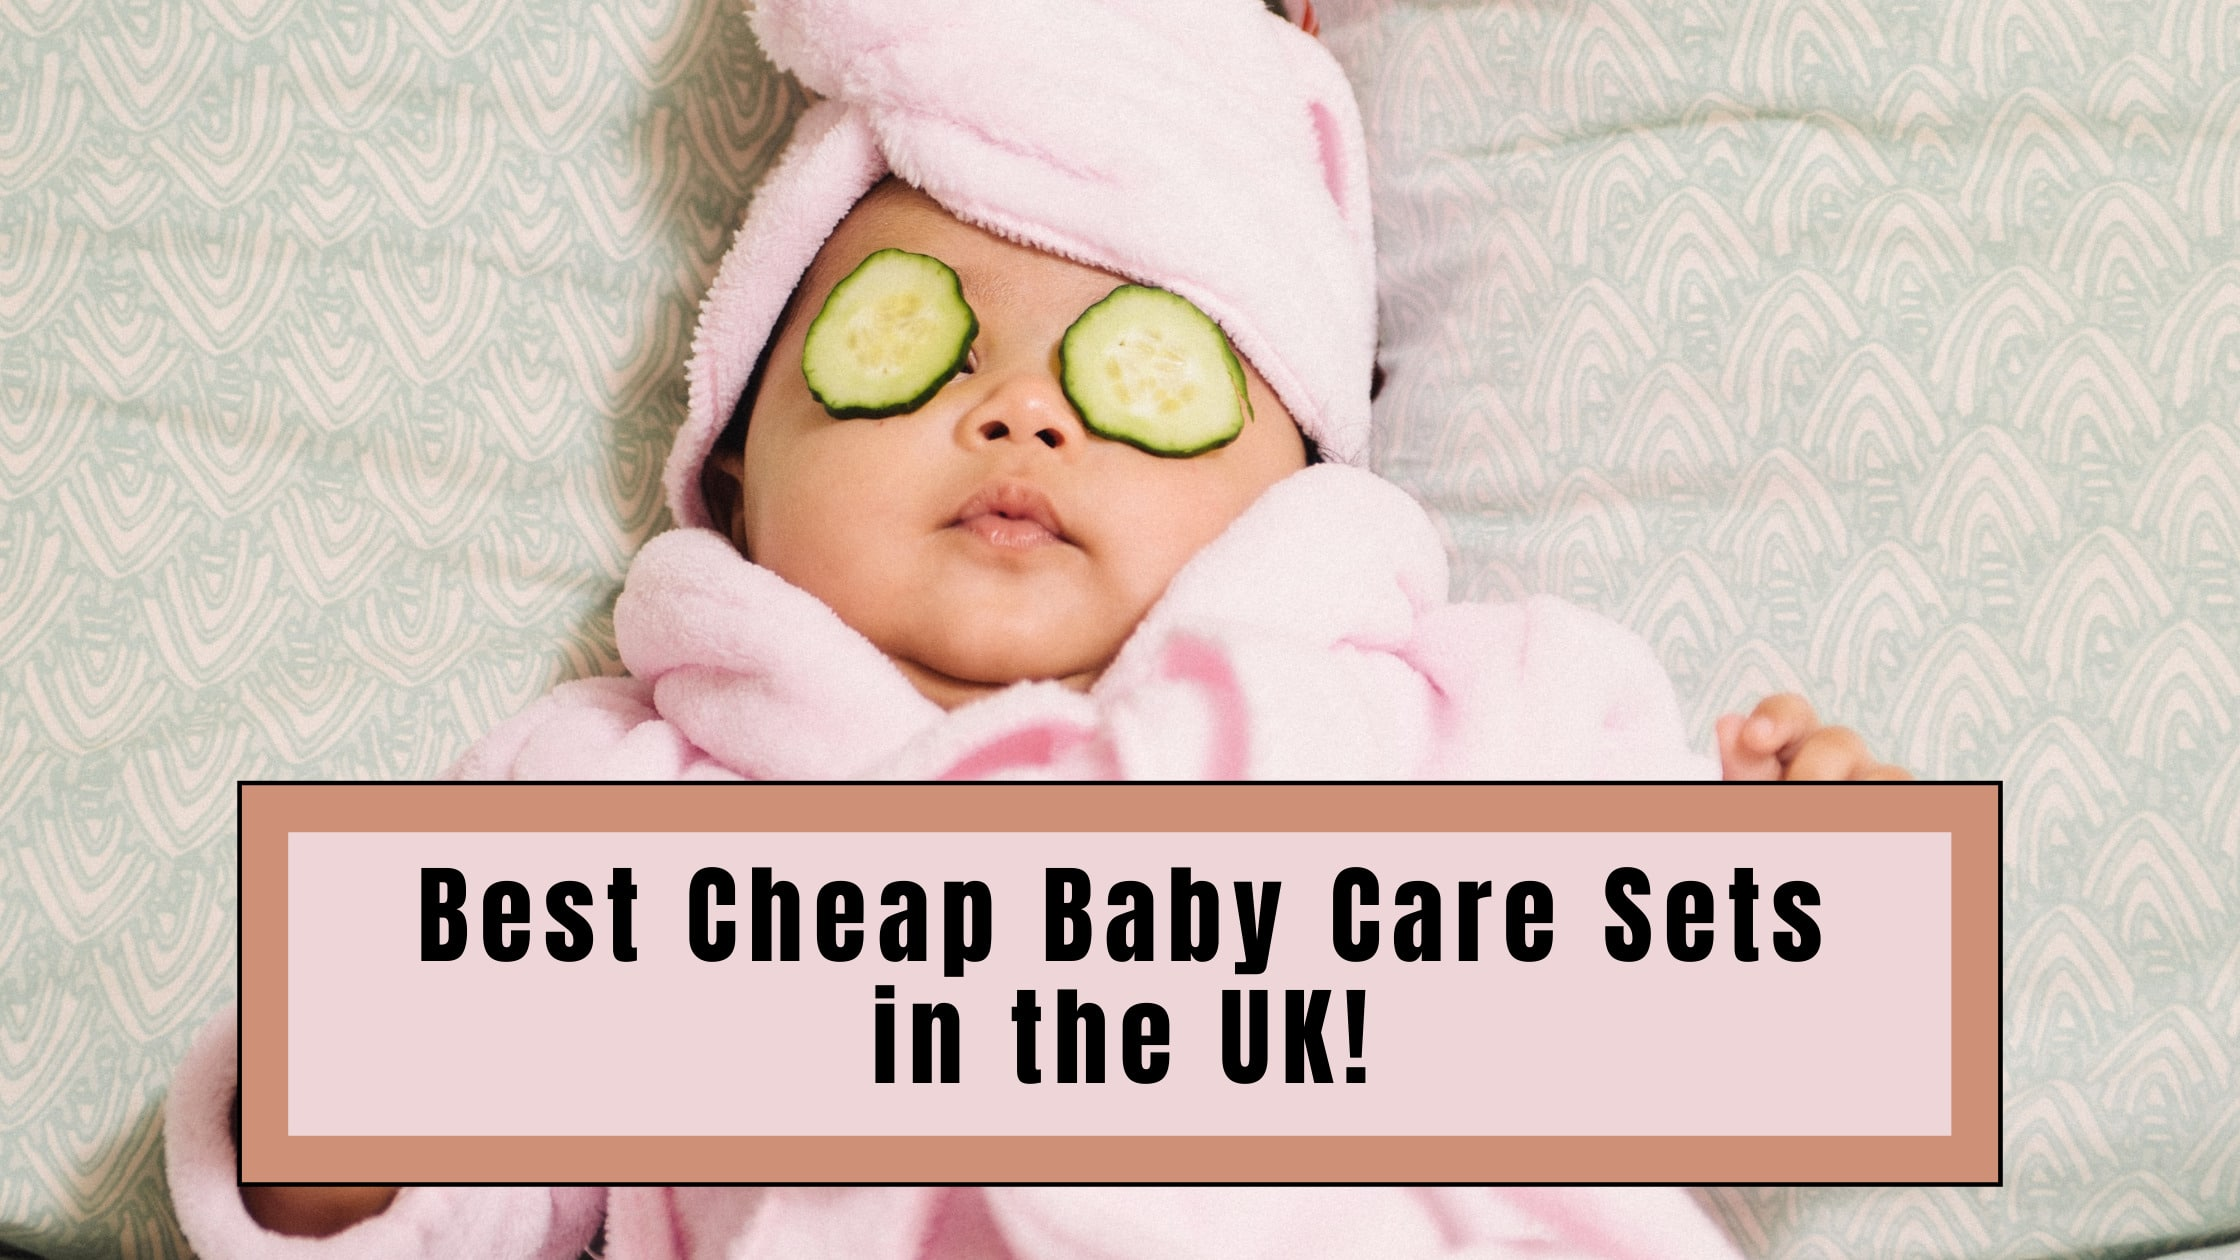 Best Cheap Baby Care Sets in the UK